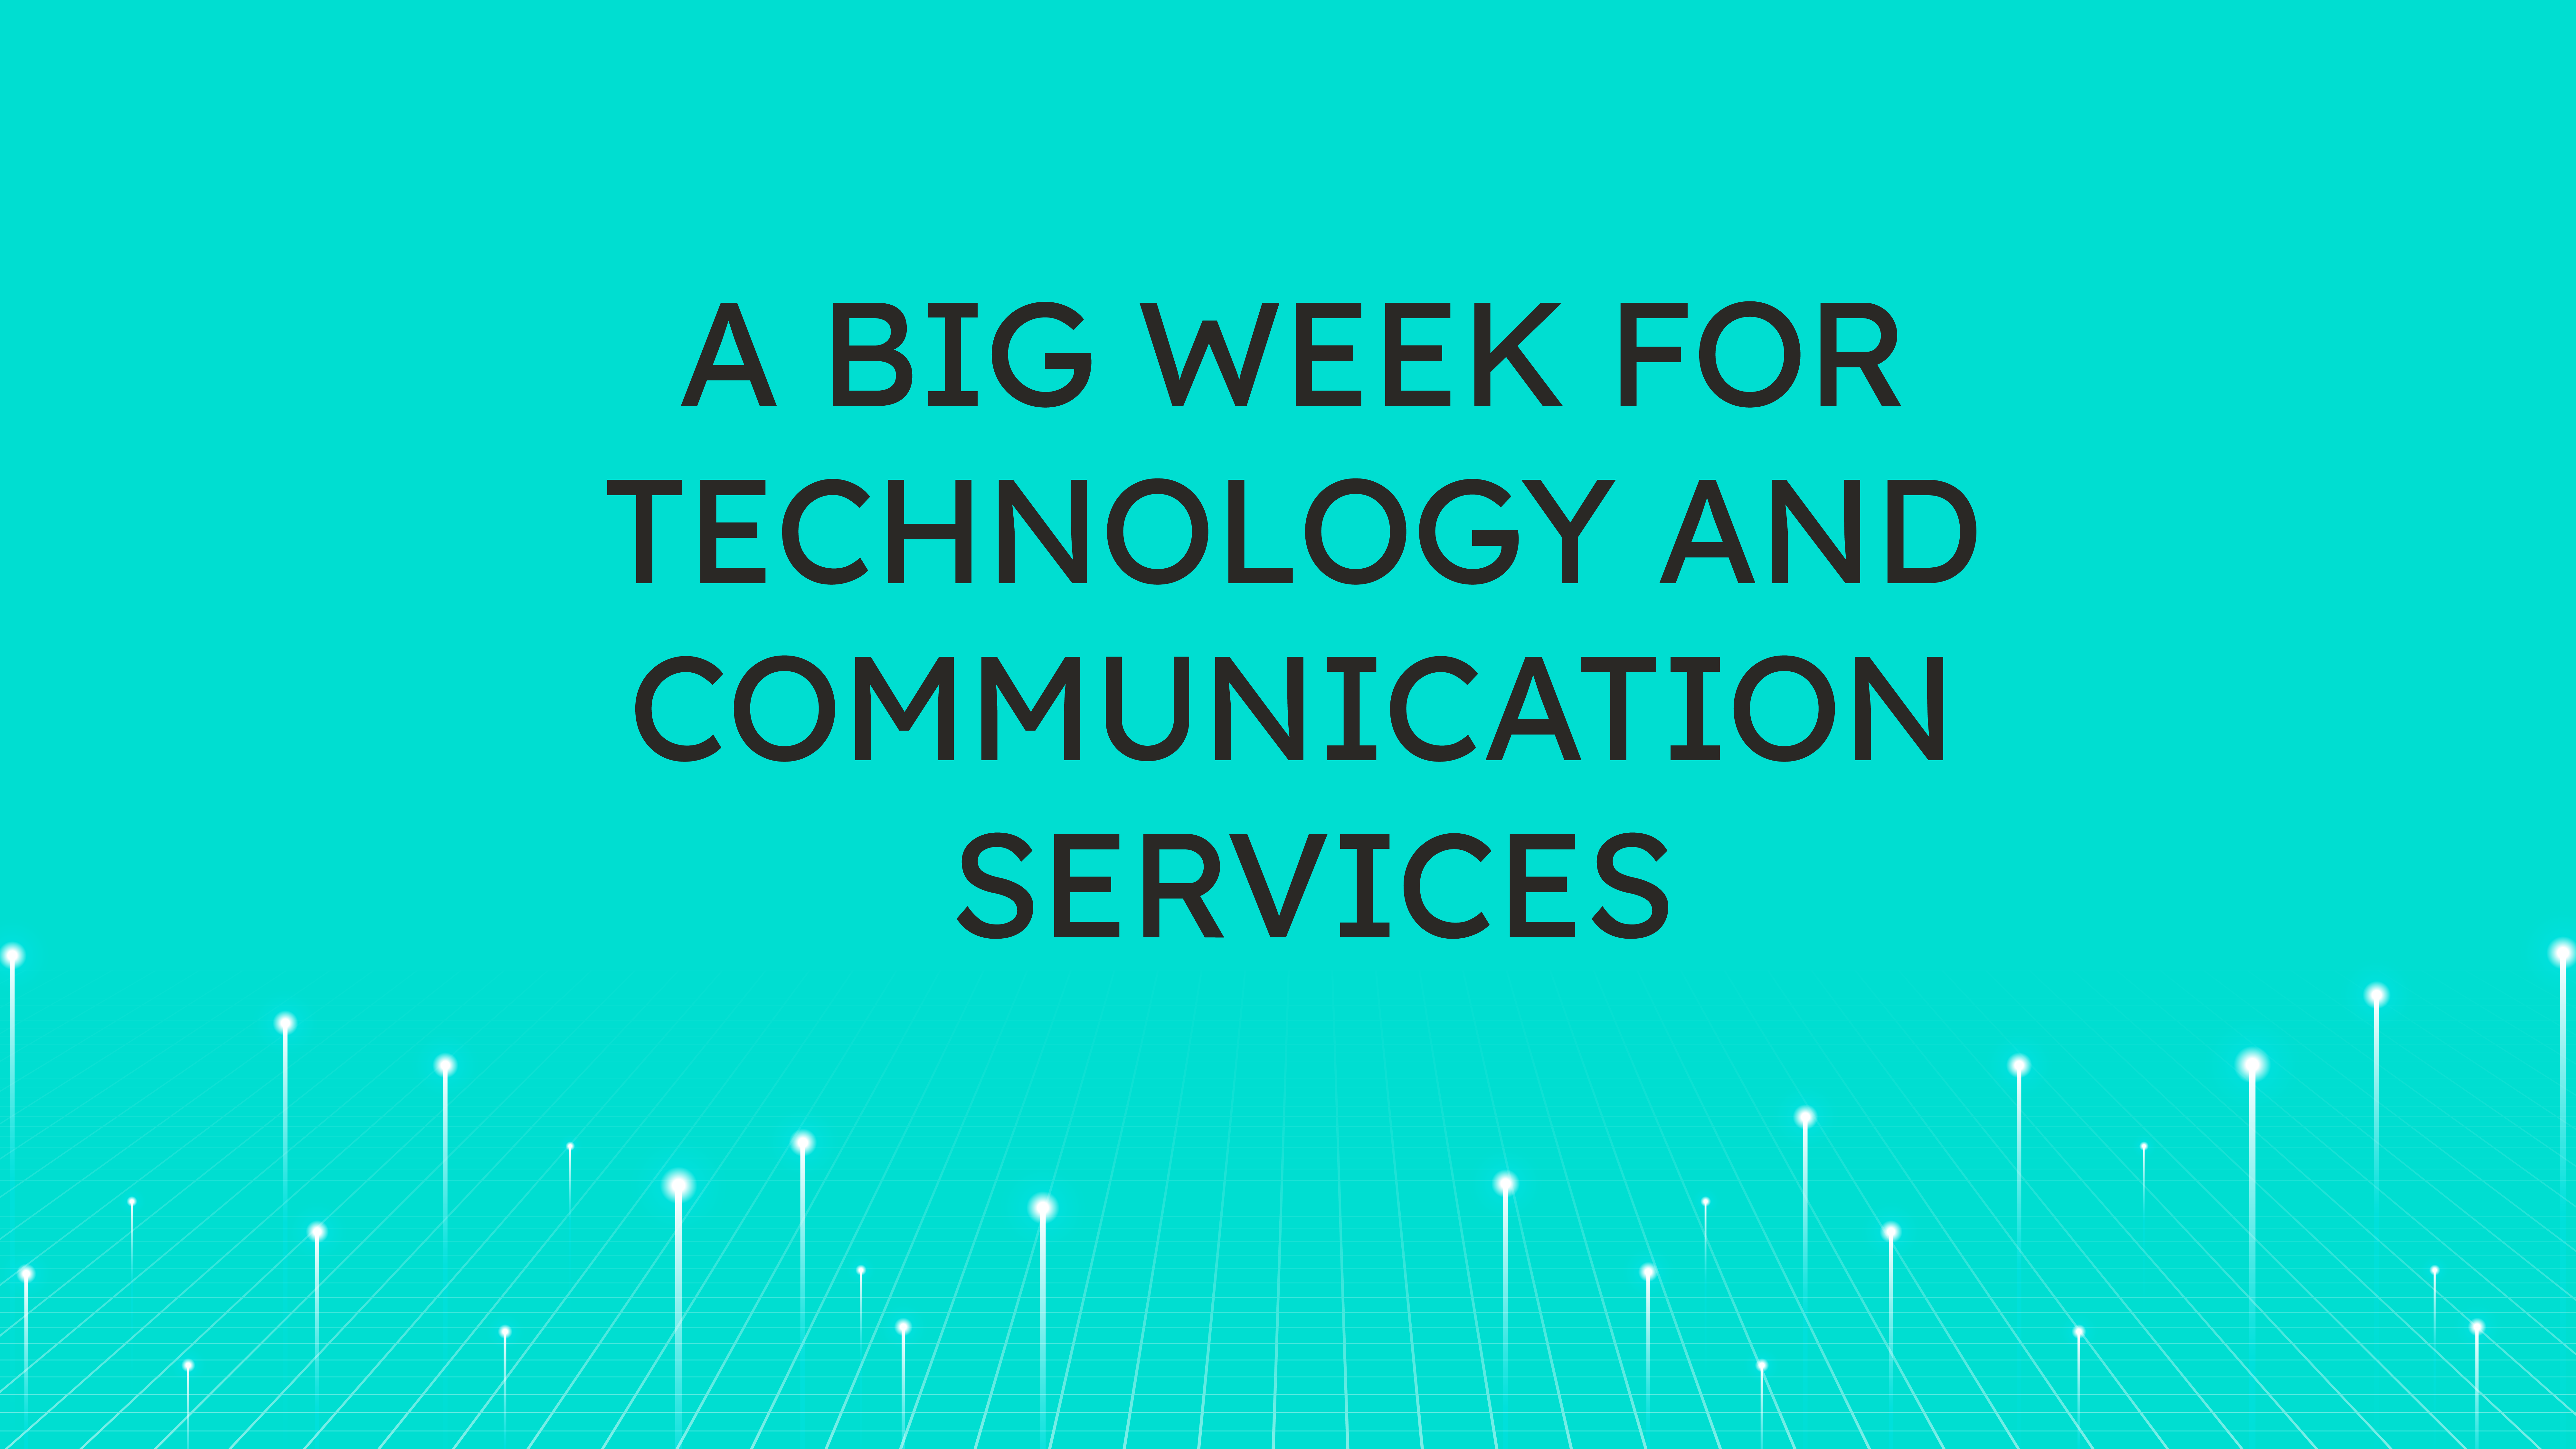 A Big Week for Technology  and Communication Services